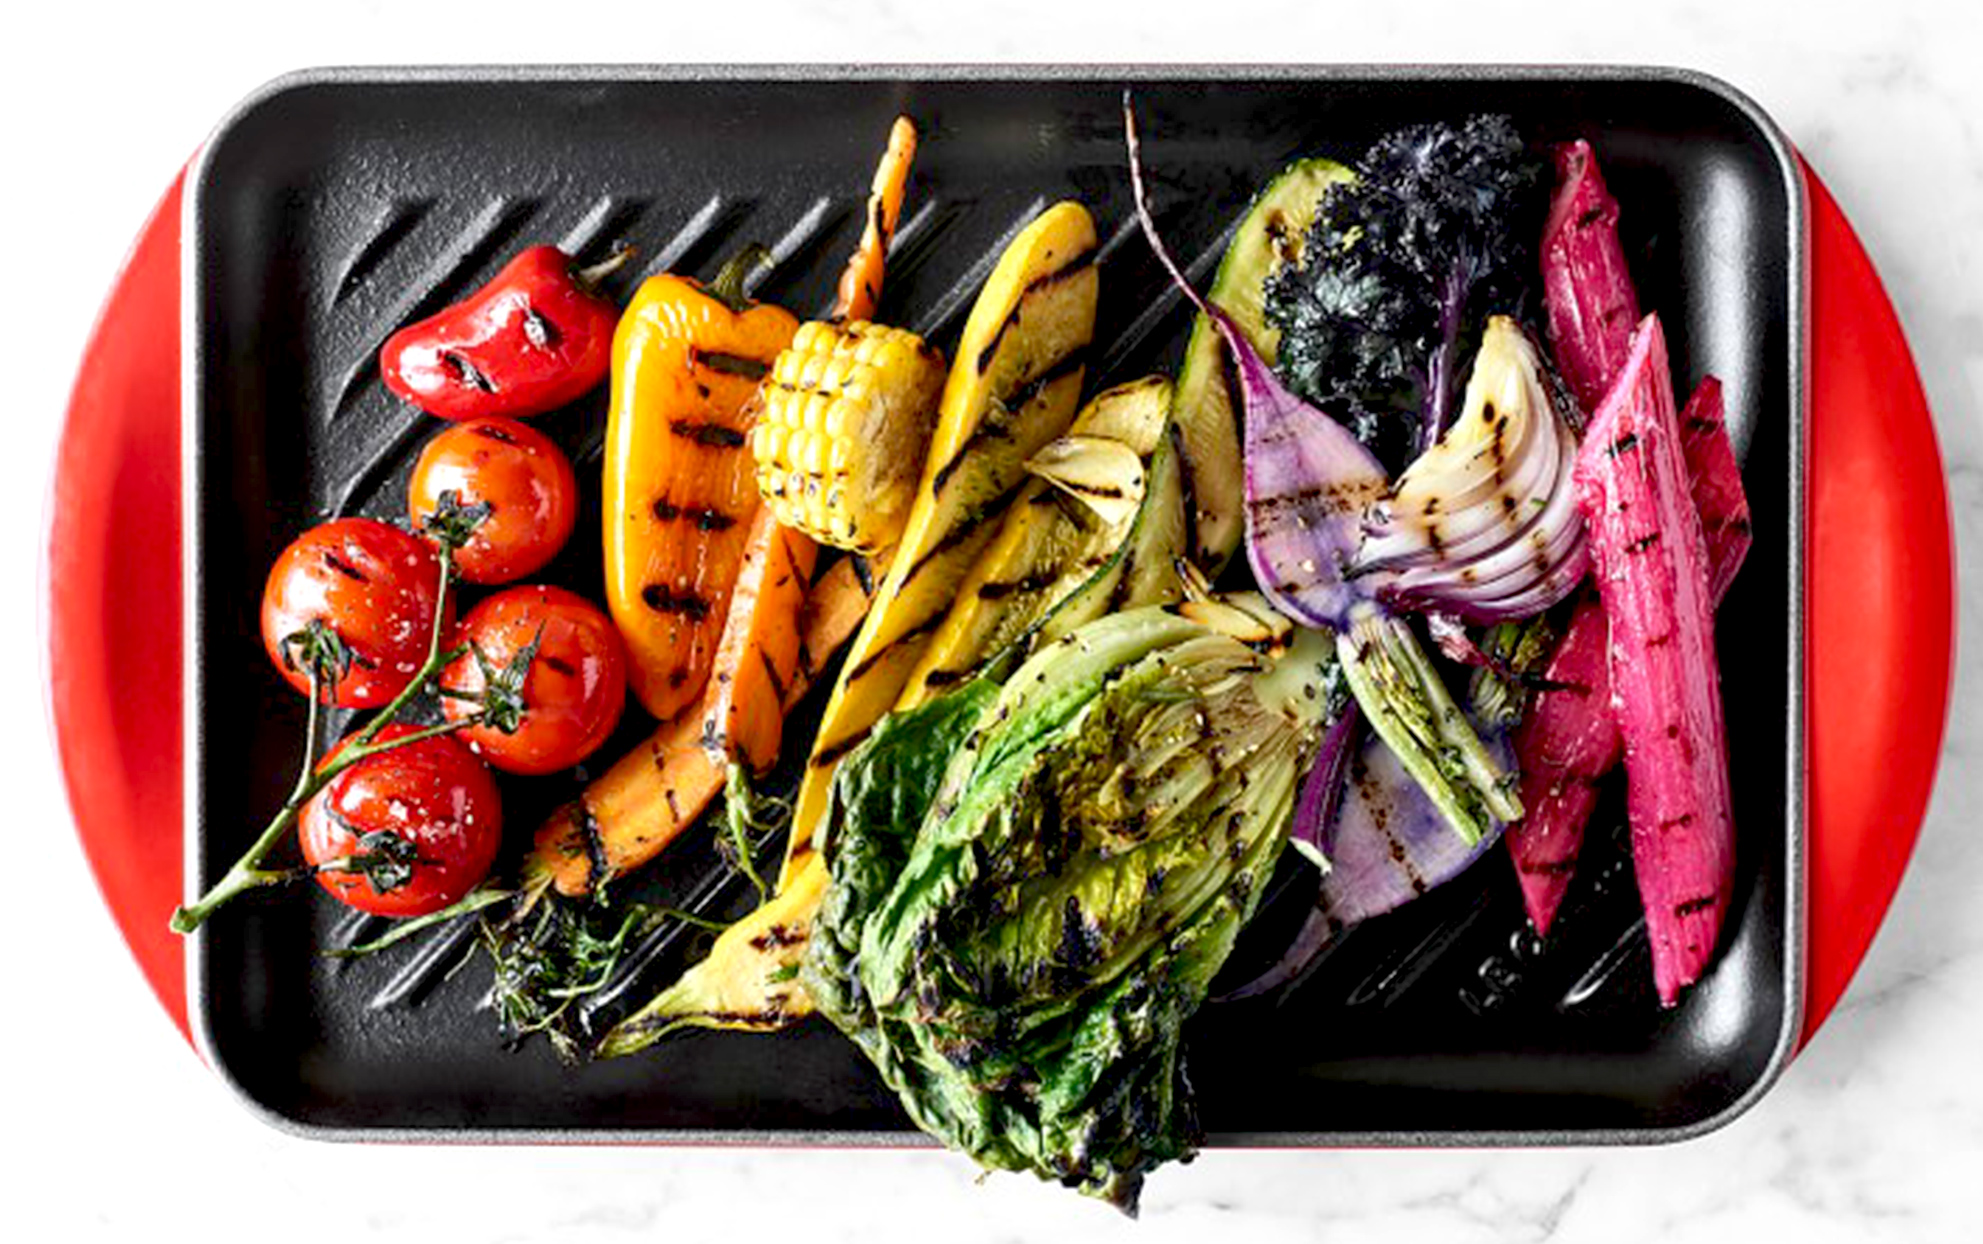 Le Creuset cast iron grill with vegetables